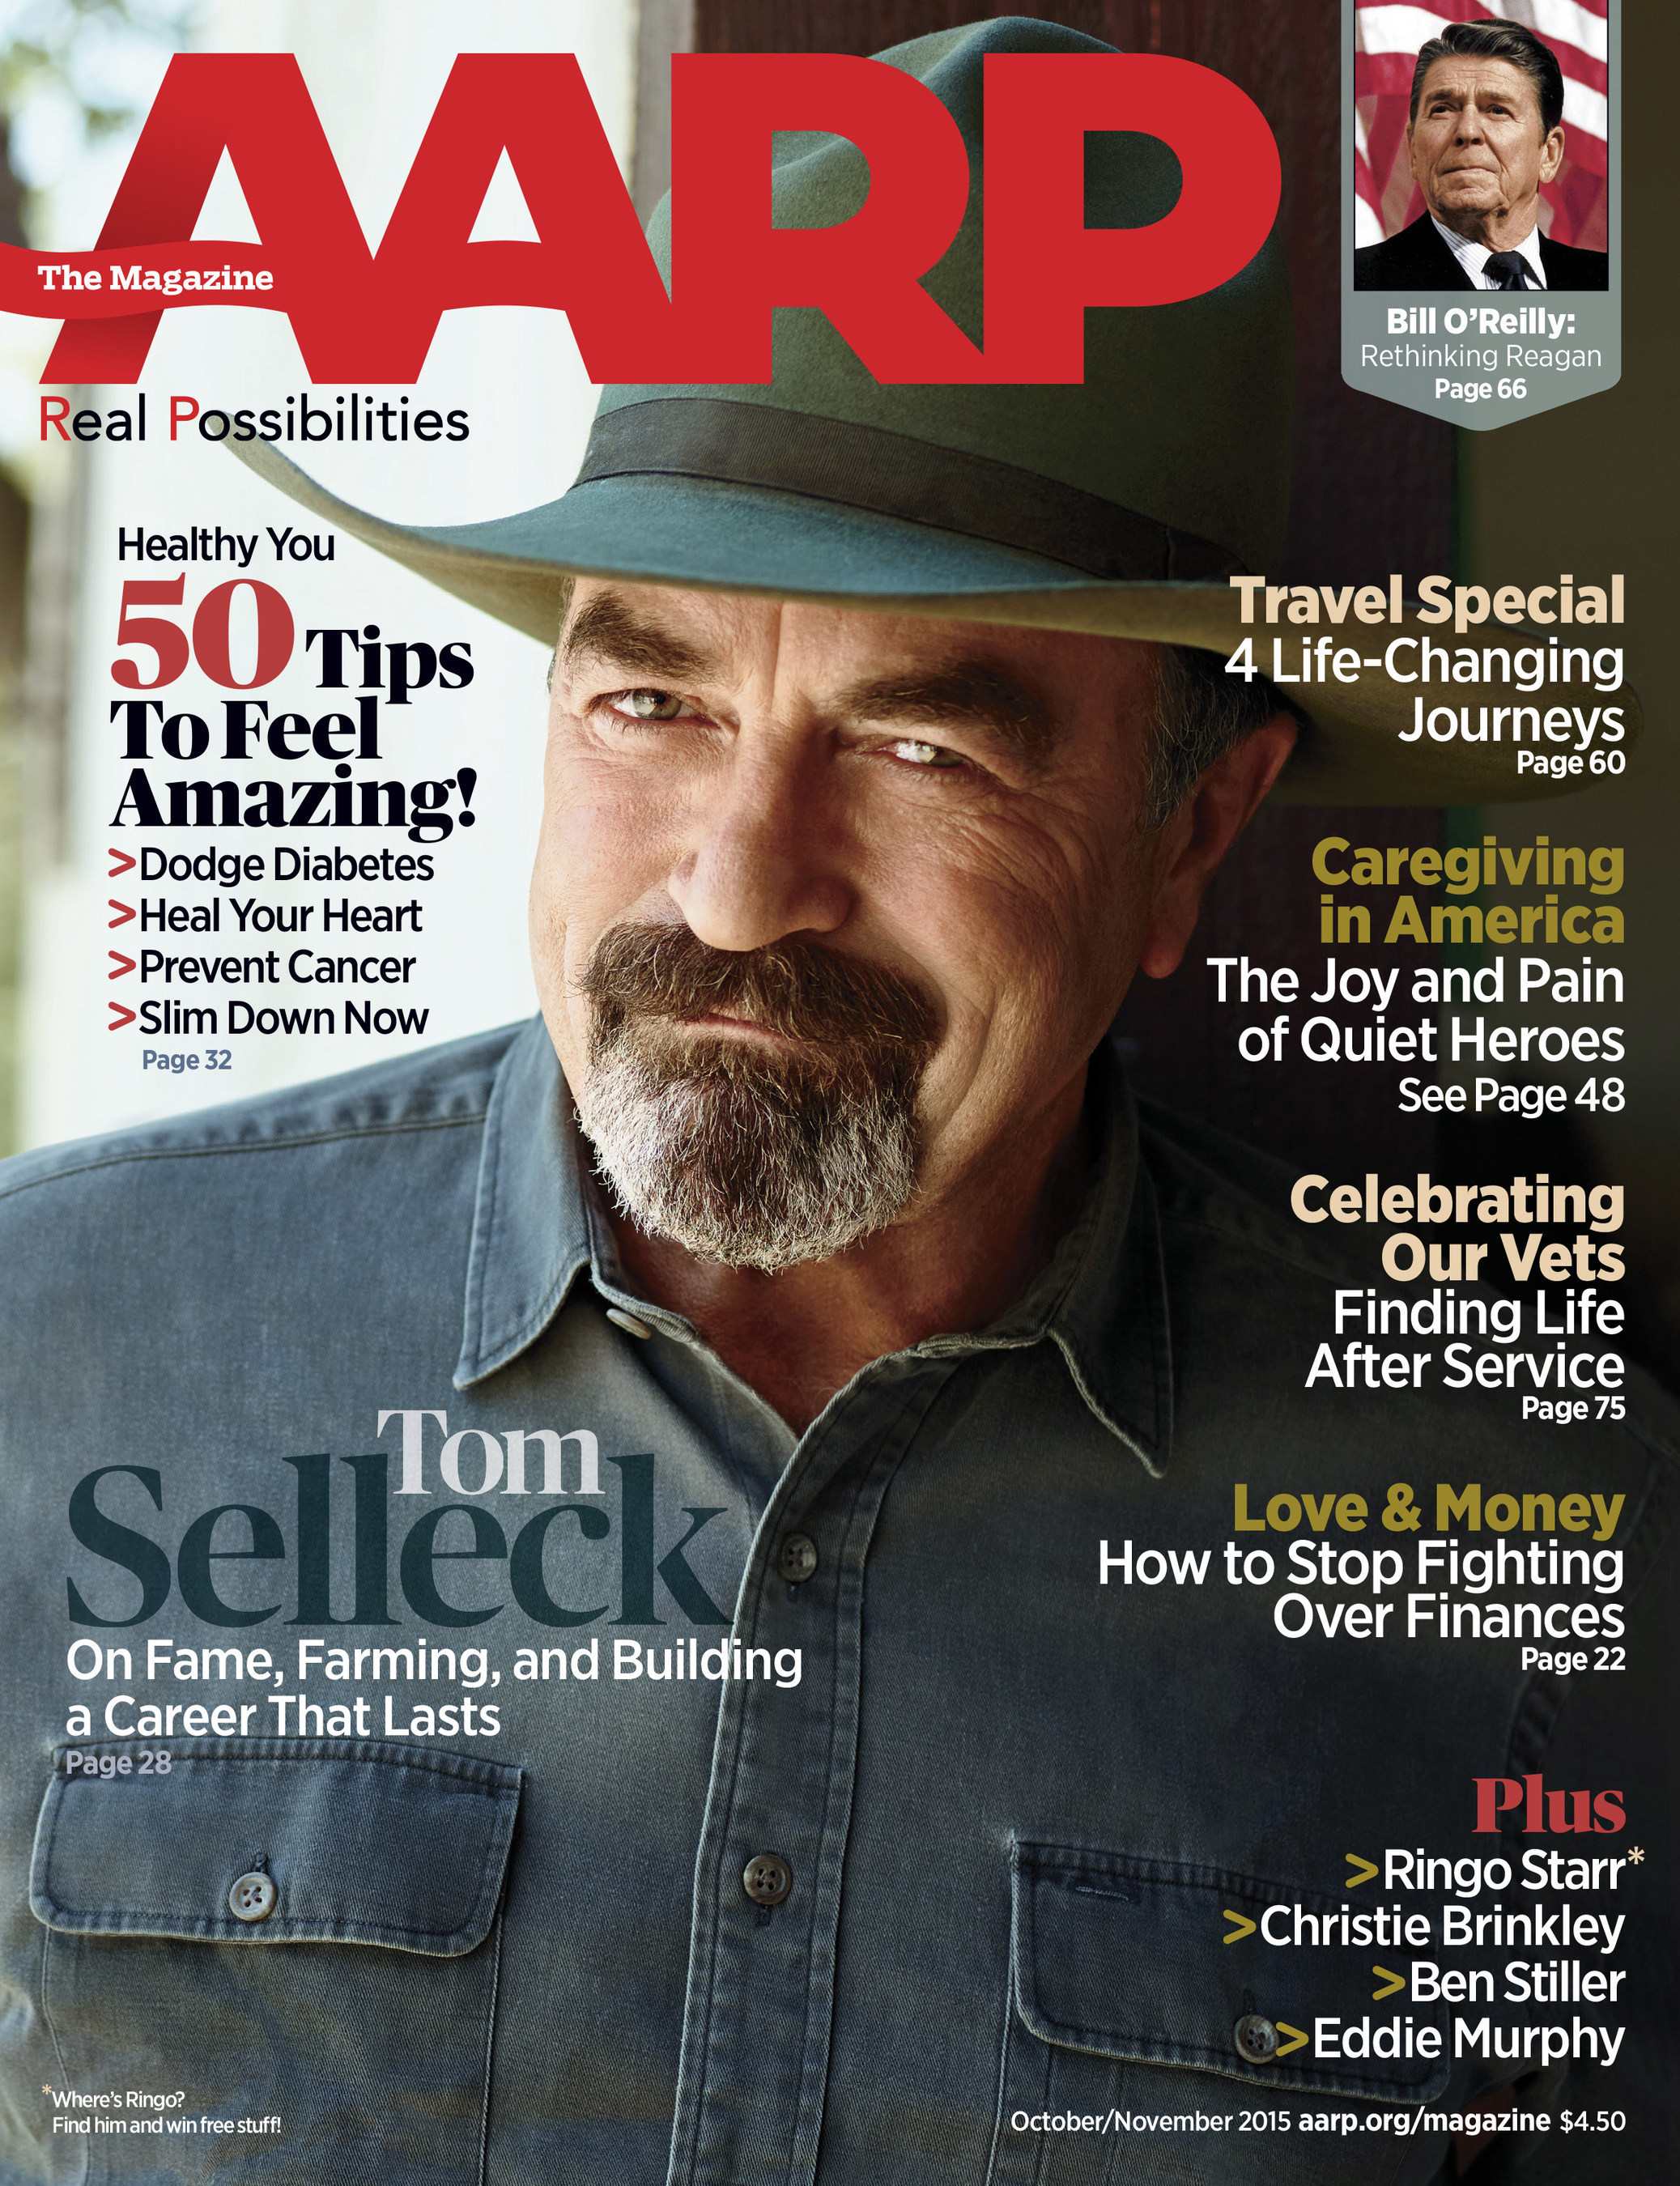 In The October/November Issue Of AARP The Magazine